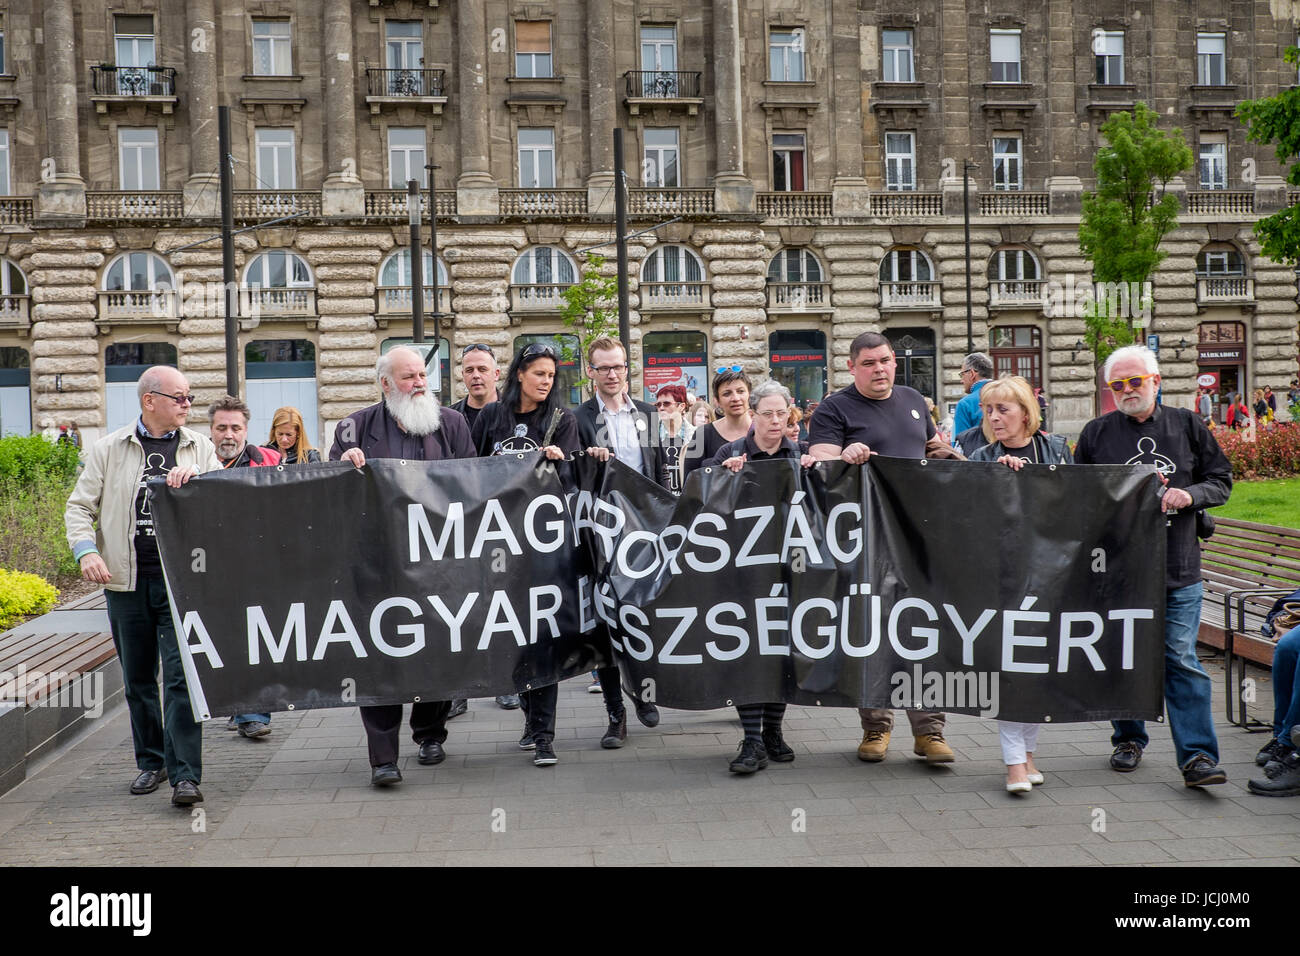 BUDAPEST, HUNGARY - AVRIL 15, 2016: Demonstration against the Hungarian government's health policy at Kossuth - Stock Image